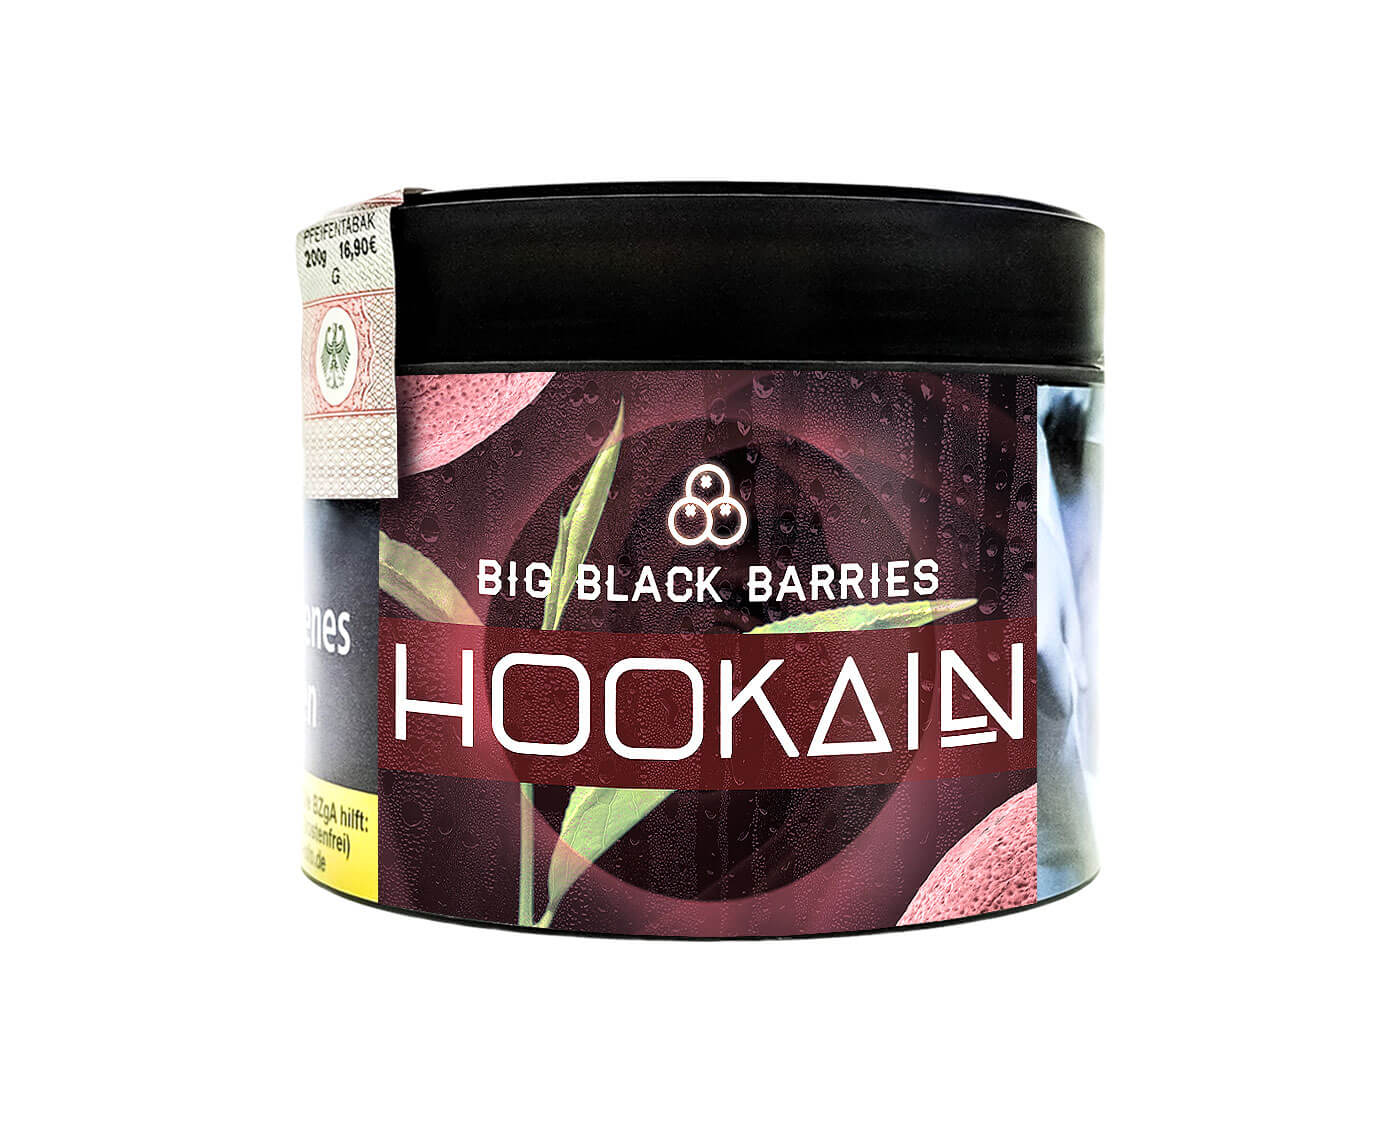 Hookain Tobacco - Big Black Barries 200g